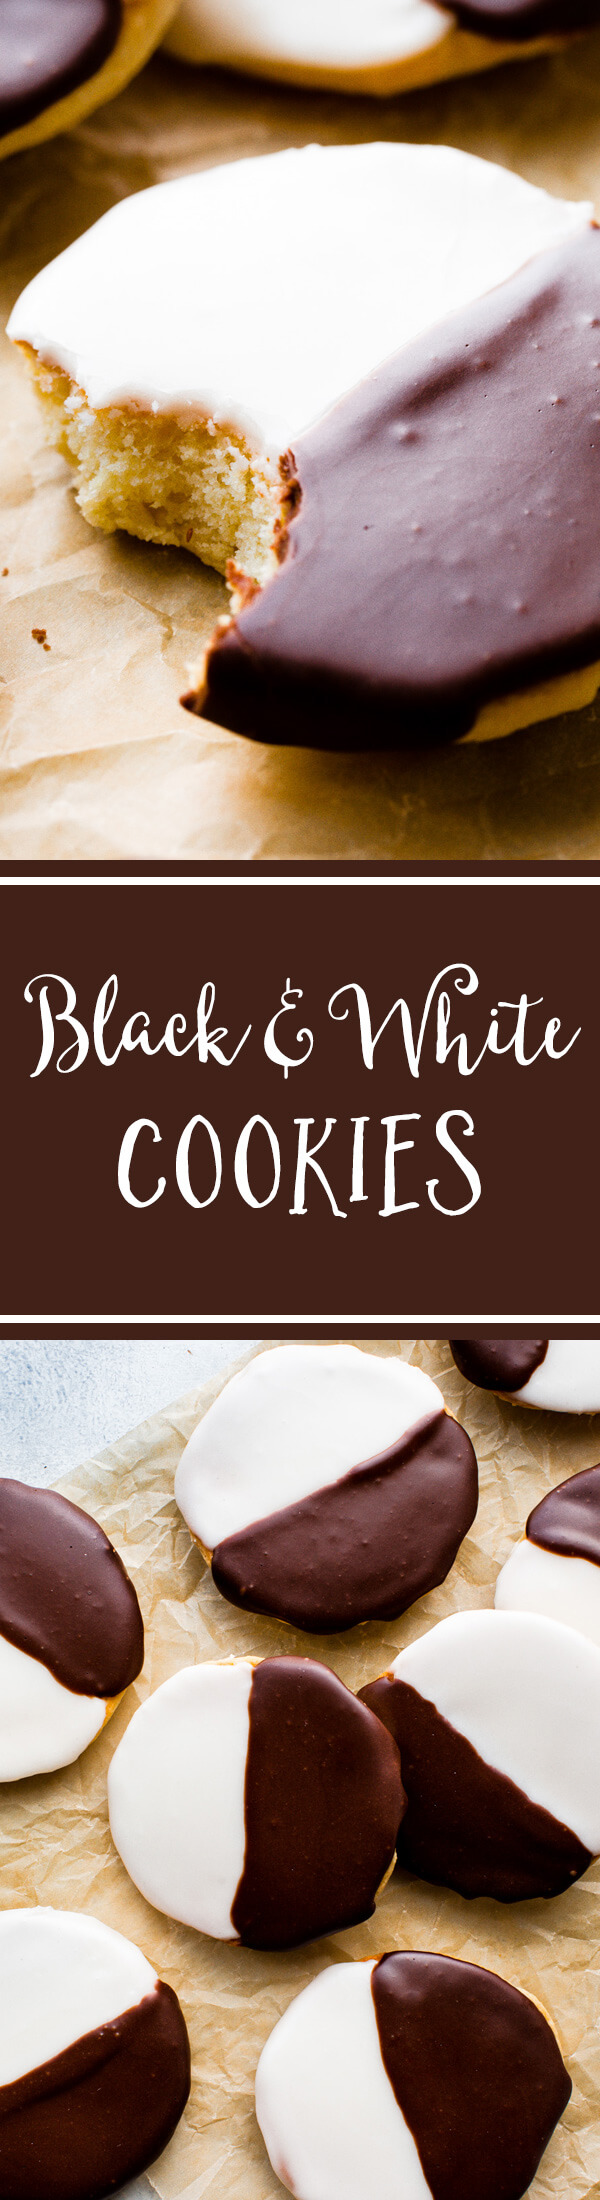 cookies recipe recipes baking cookie york sallysbakingaddiction addiction cake sallys easy sally surprisingly tested irresistible carefully chocolate visit biscuits pins